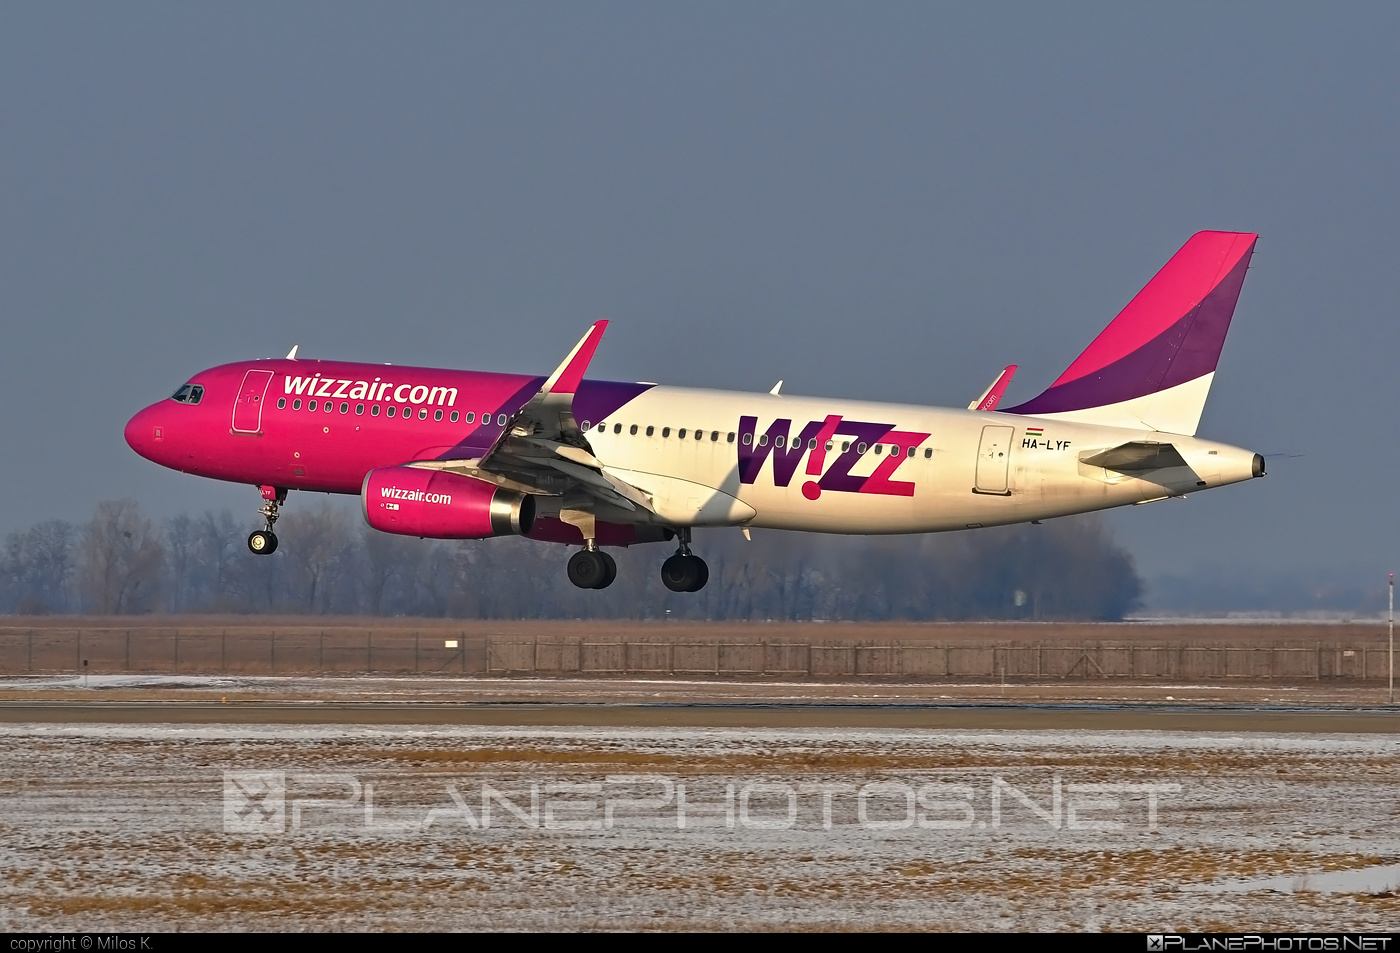 Airbus A320-232 - HA-LYF operated by Wizz Air #a320 #a320family #airbus #airbus320 #wizz #wizzair